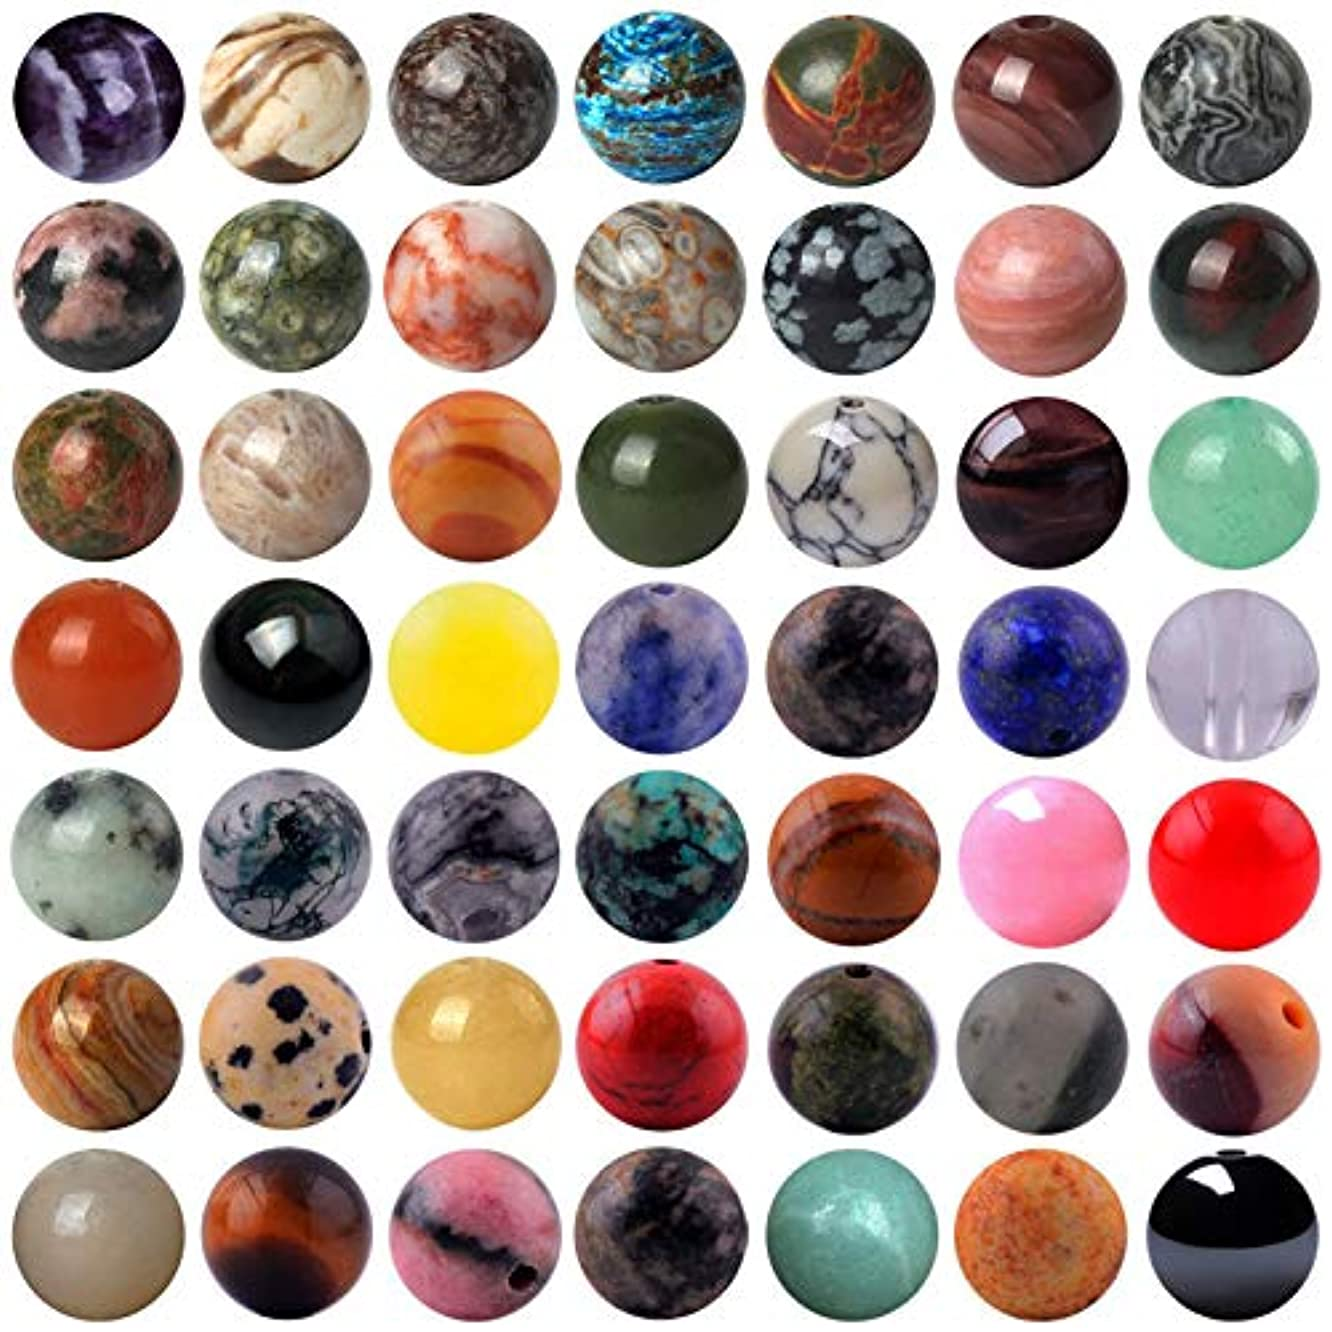 Natural Stone Beads 200pcs Mixed 8mm Round Genuine Real Stone Beading Loose Gemstone Hole Size 1mm DIY Charm Smooth Beads for Bracelet Necklace Earrings Jewelry Making (Stone Beads Mix 200pcs)